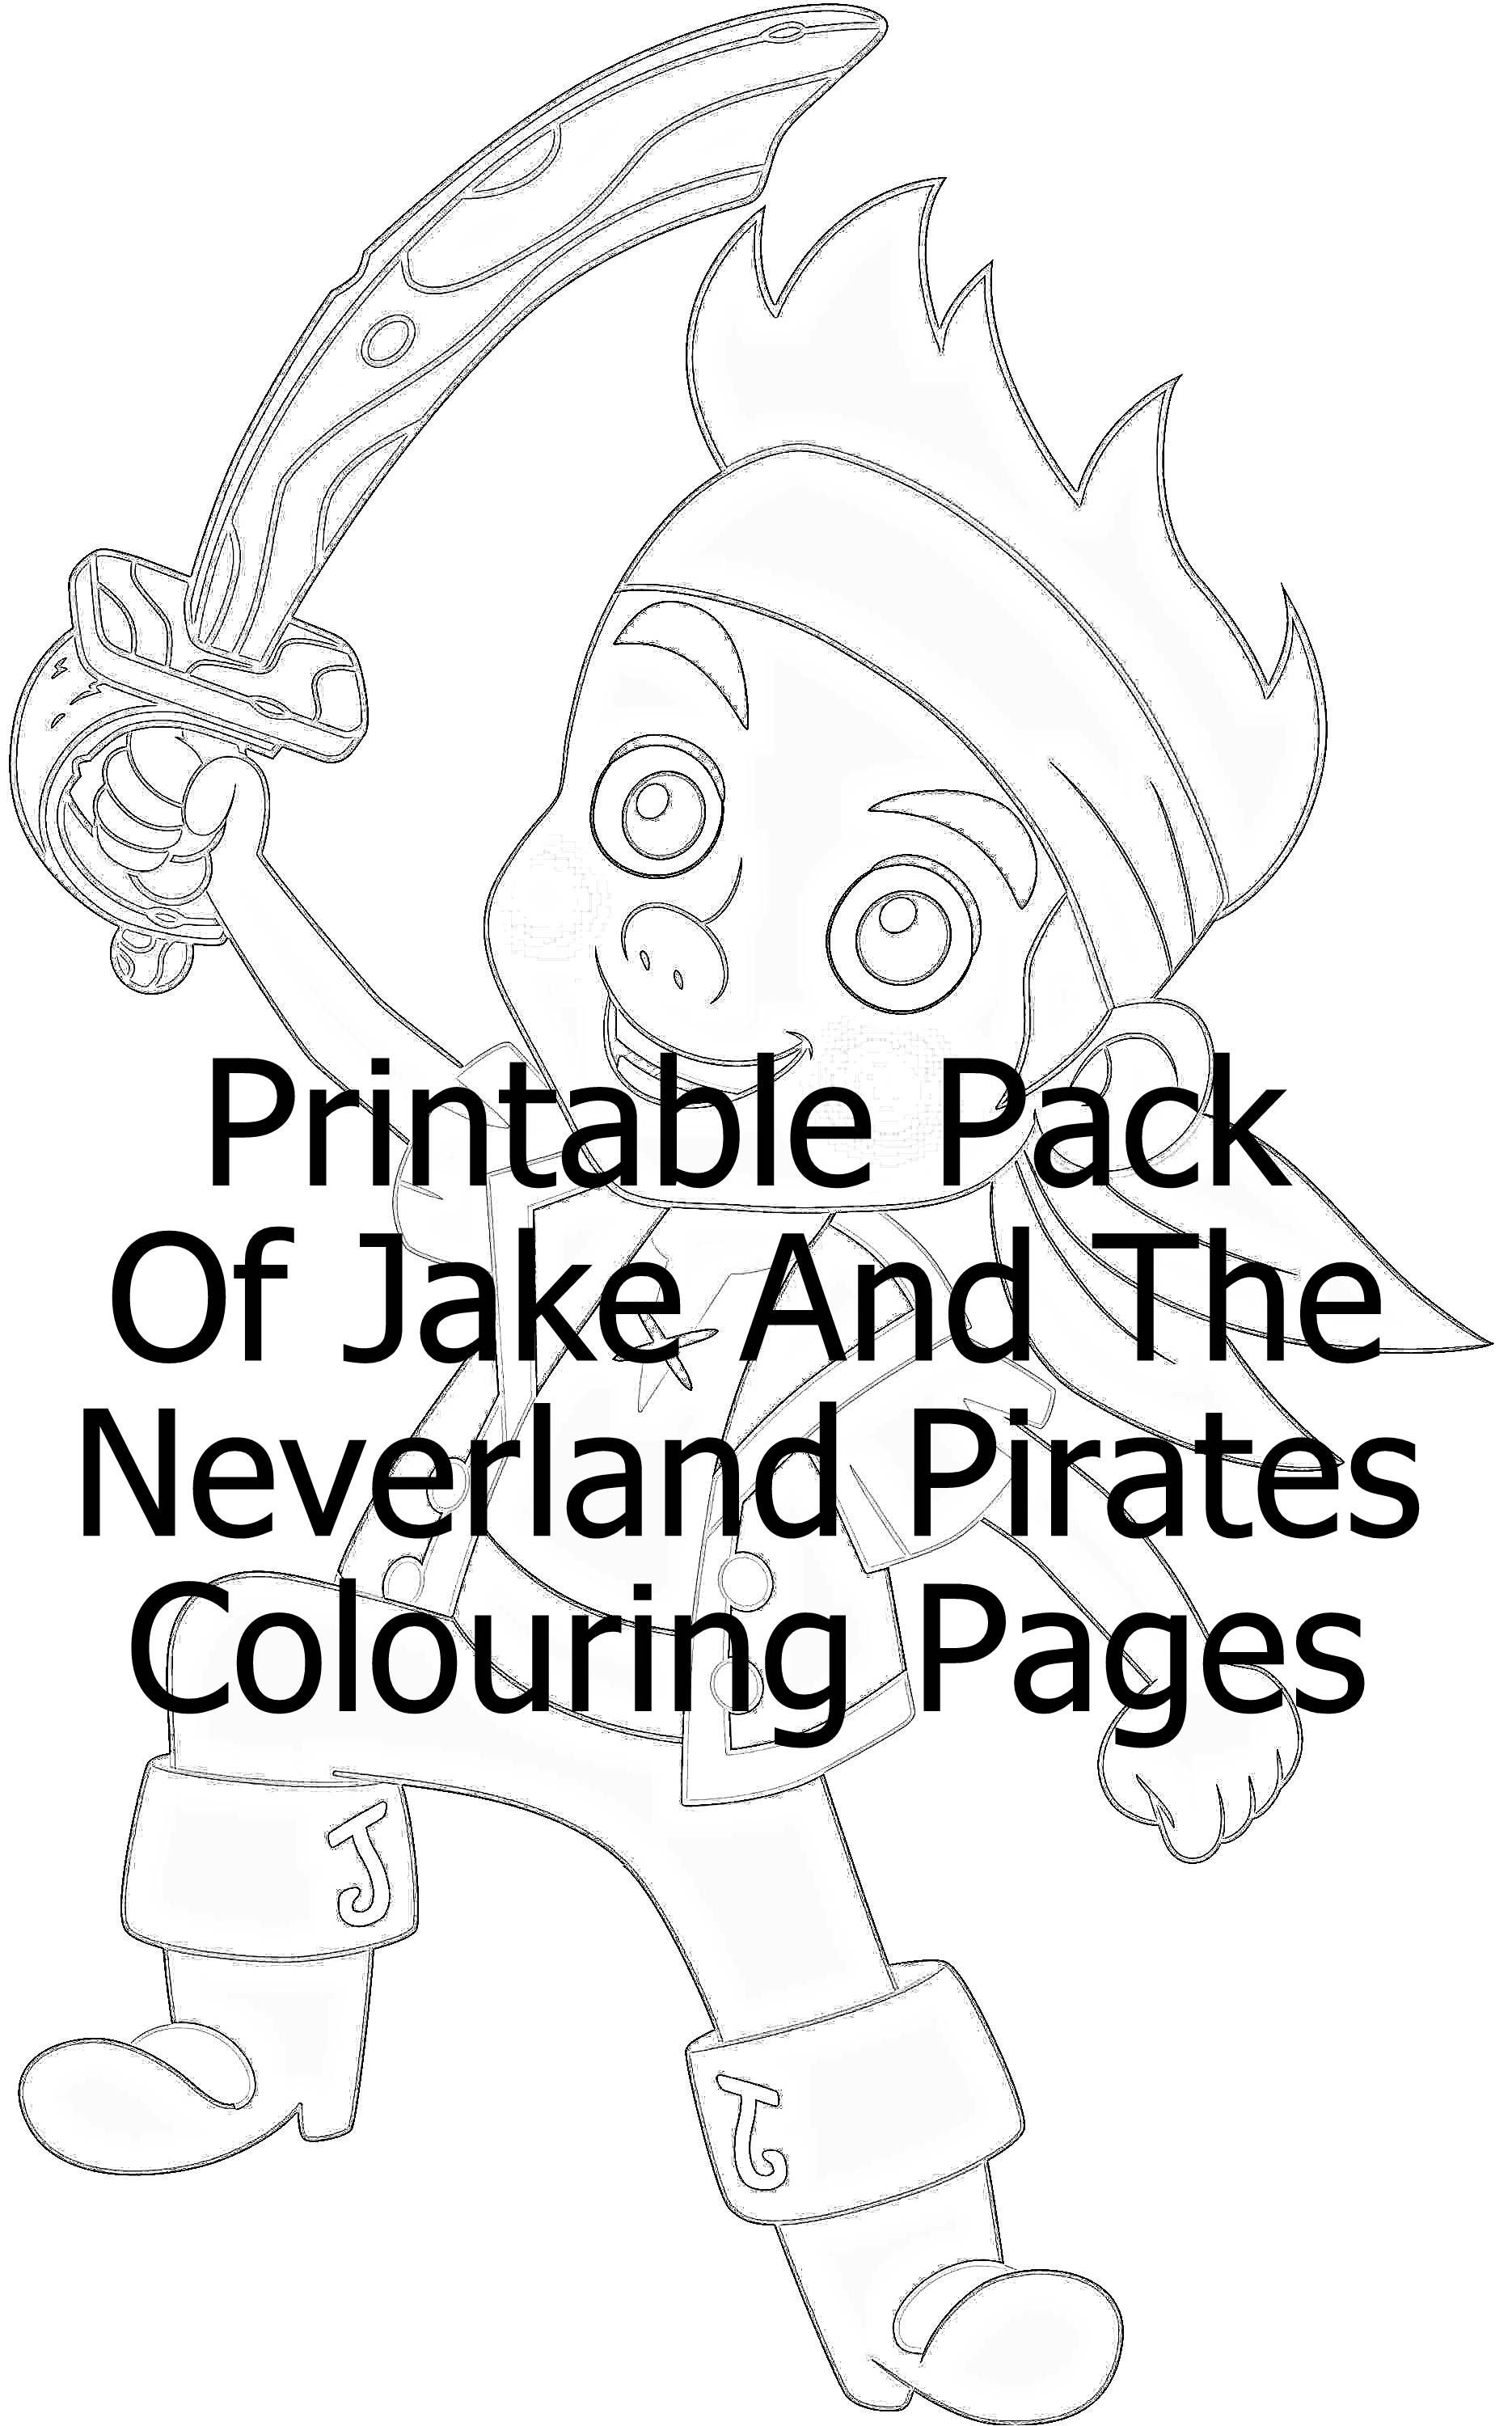 Printable Pack Jake And The Neverland Pirates Colouring Pages ...